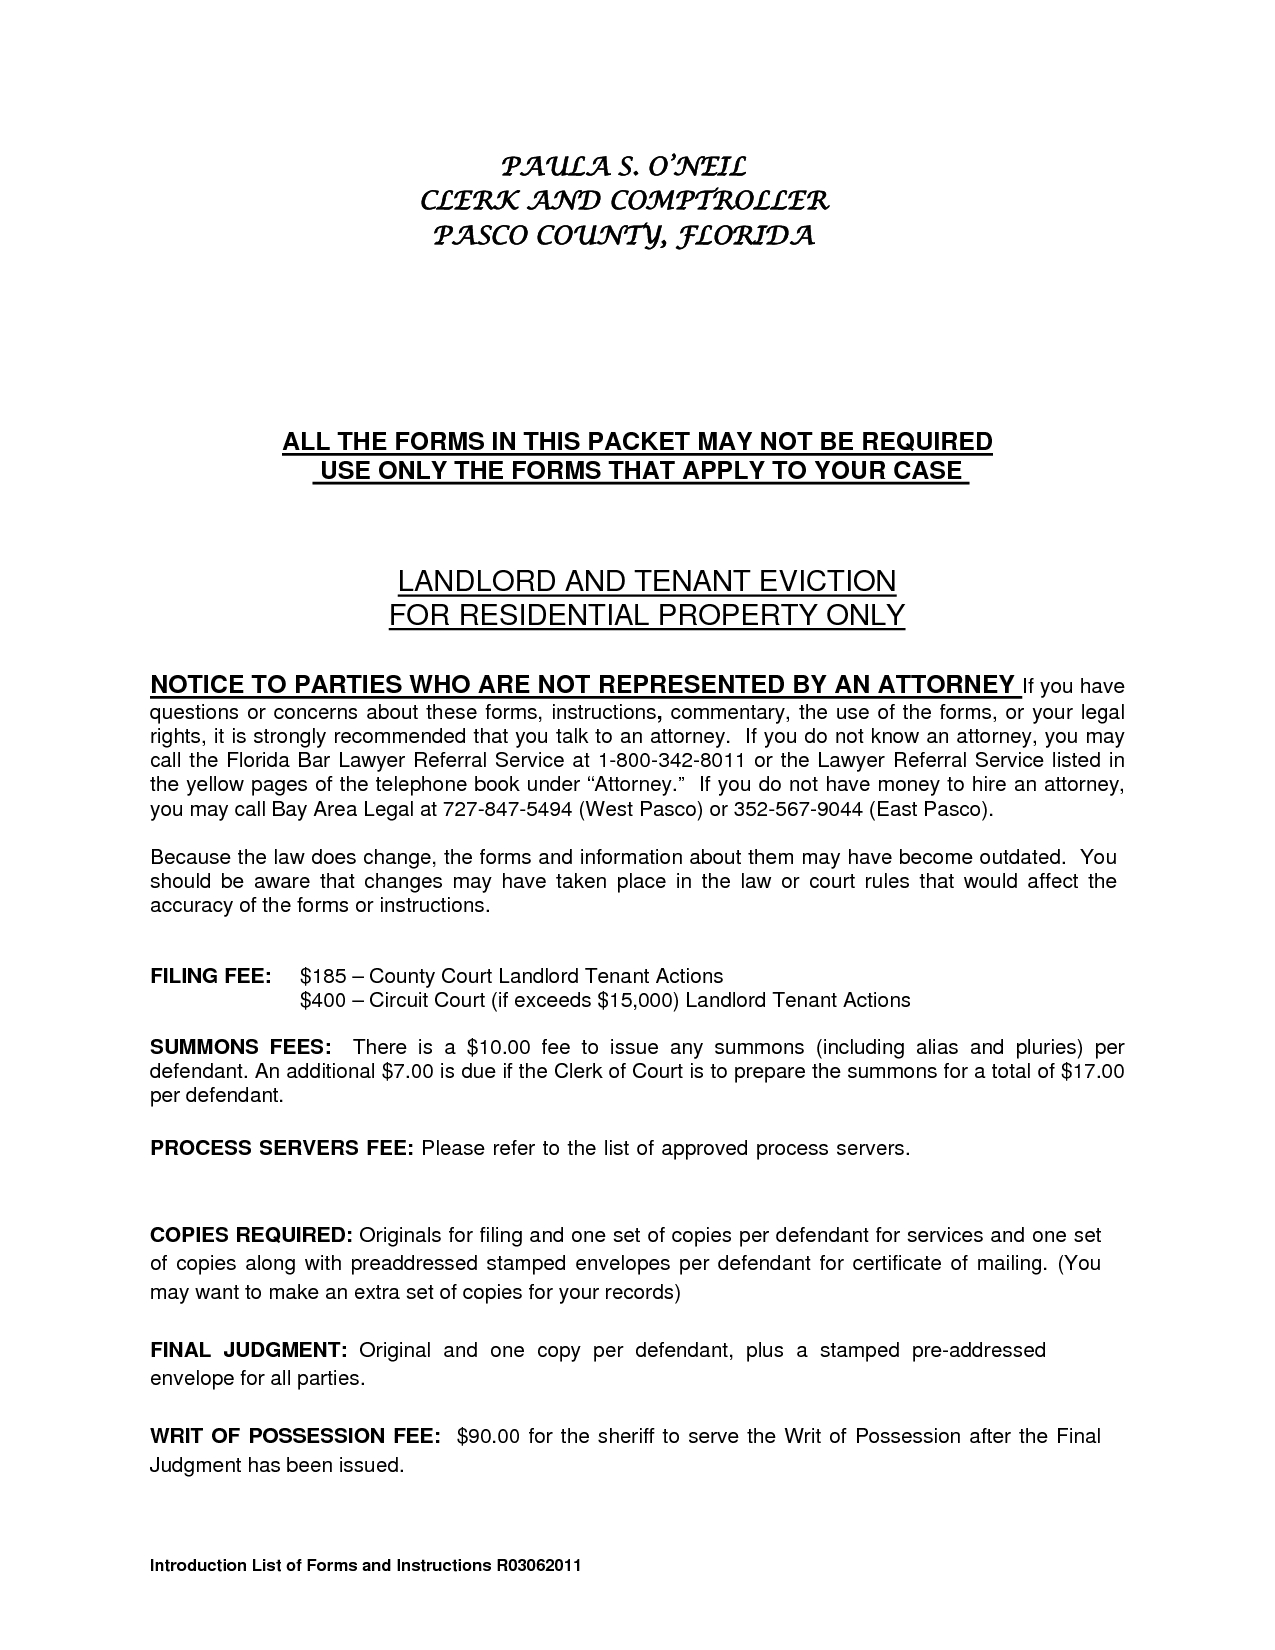 Tenancy Notice Letter Template - Residential Landlord Tenant Eviction Notice form by Ere